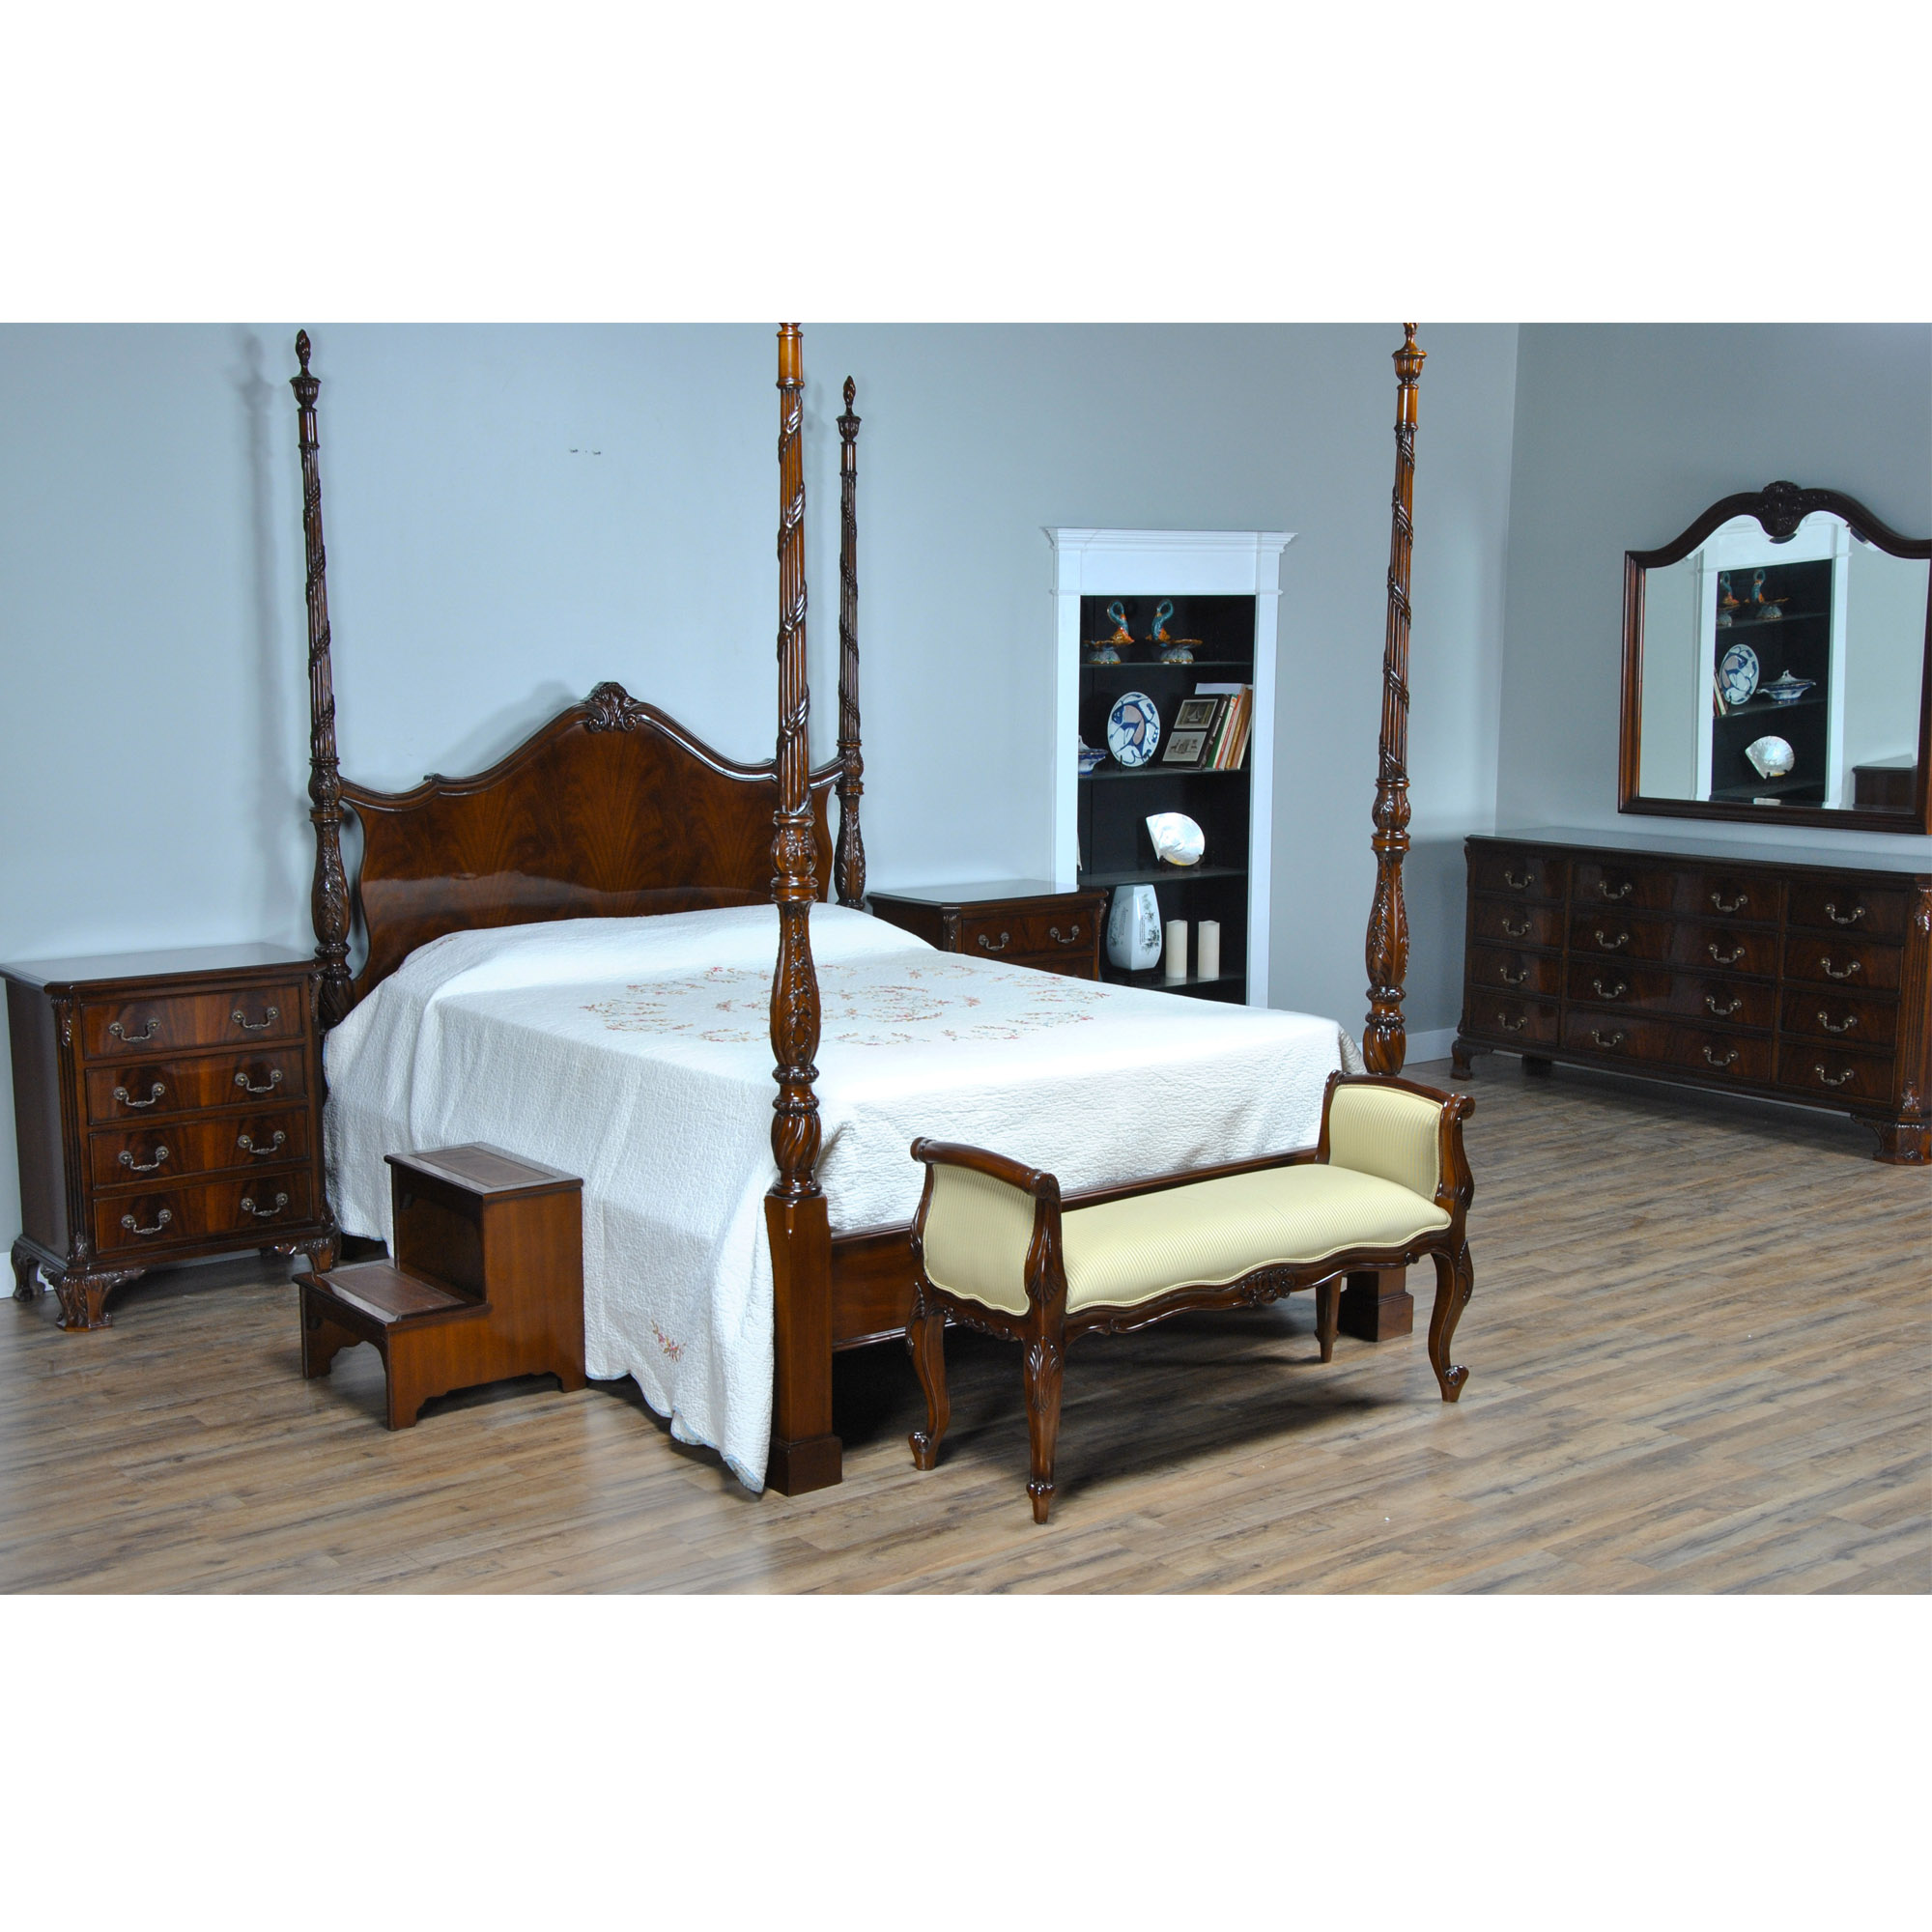 mahogany queen size four poster bed nbr019q. Black Bedroom Furniture Sets. Home Design Ideas